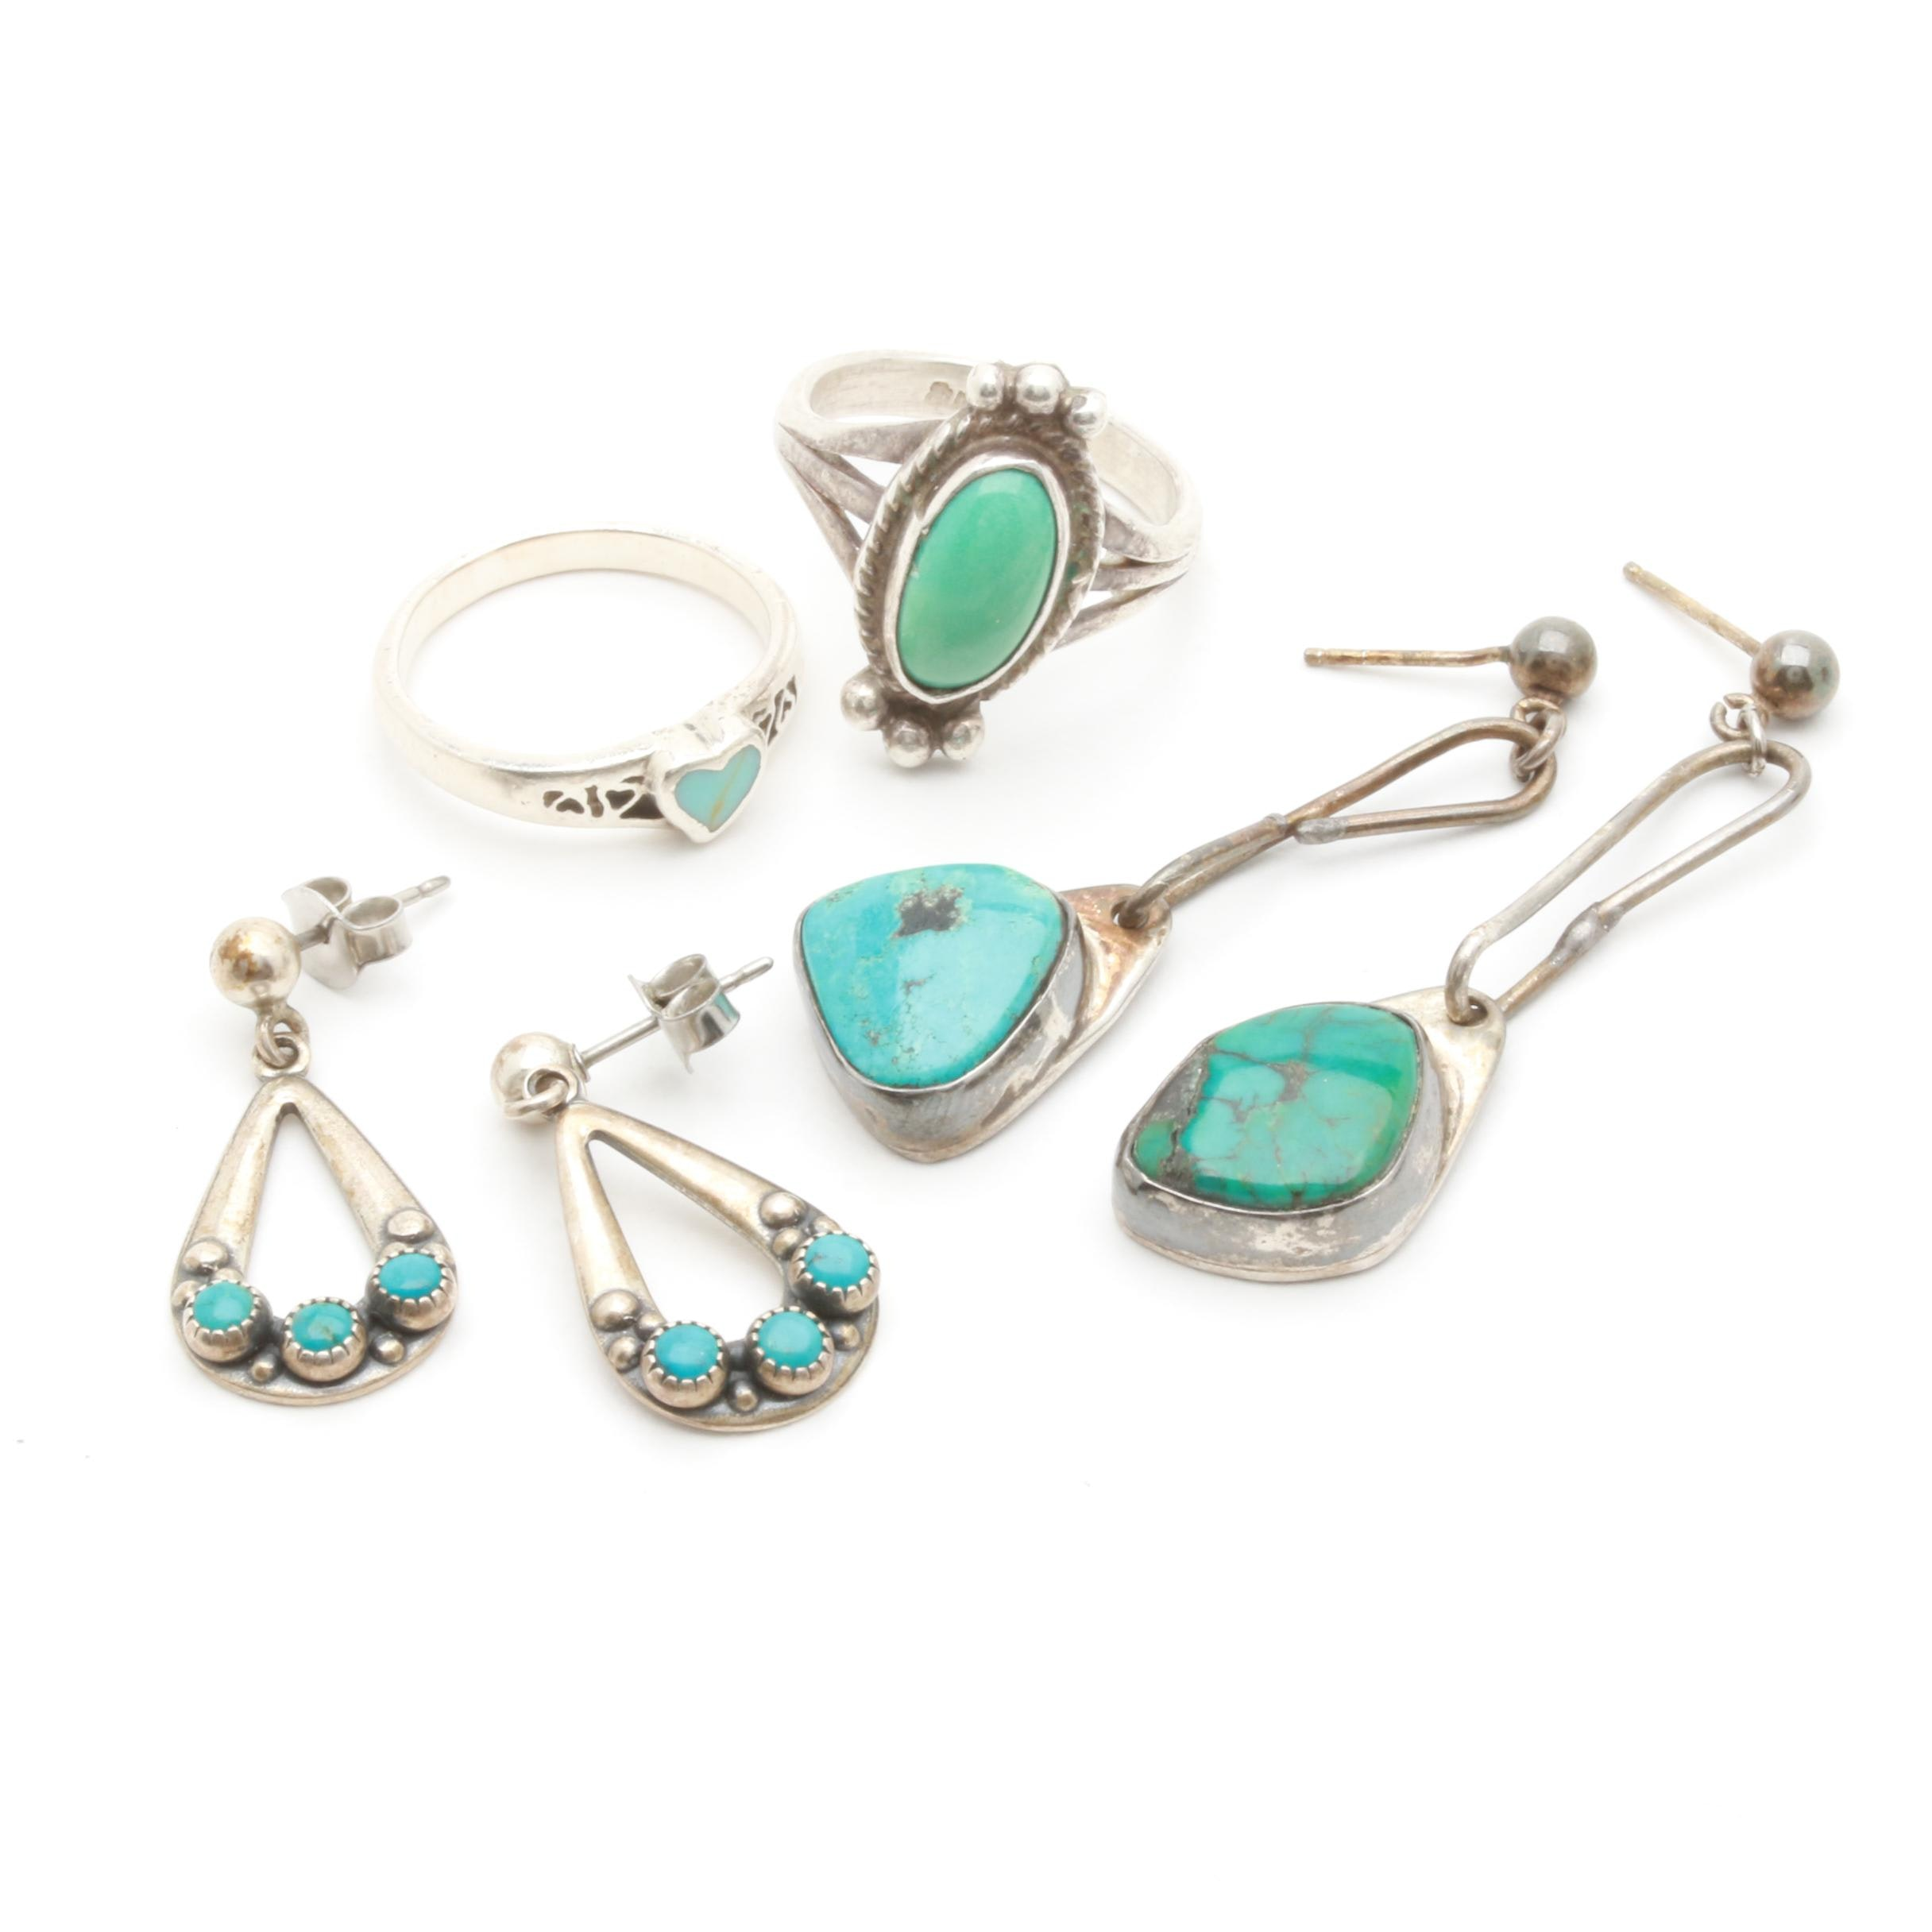 Sterling Silver Jewelry Assortment Including Turquoise and Imitation Turquoise